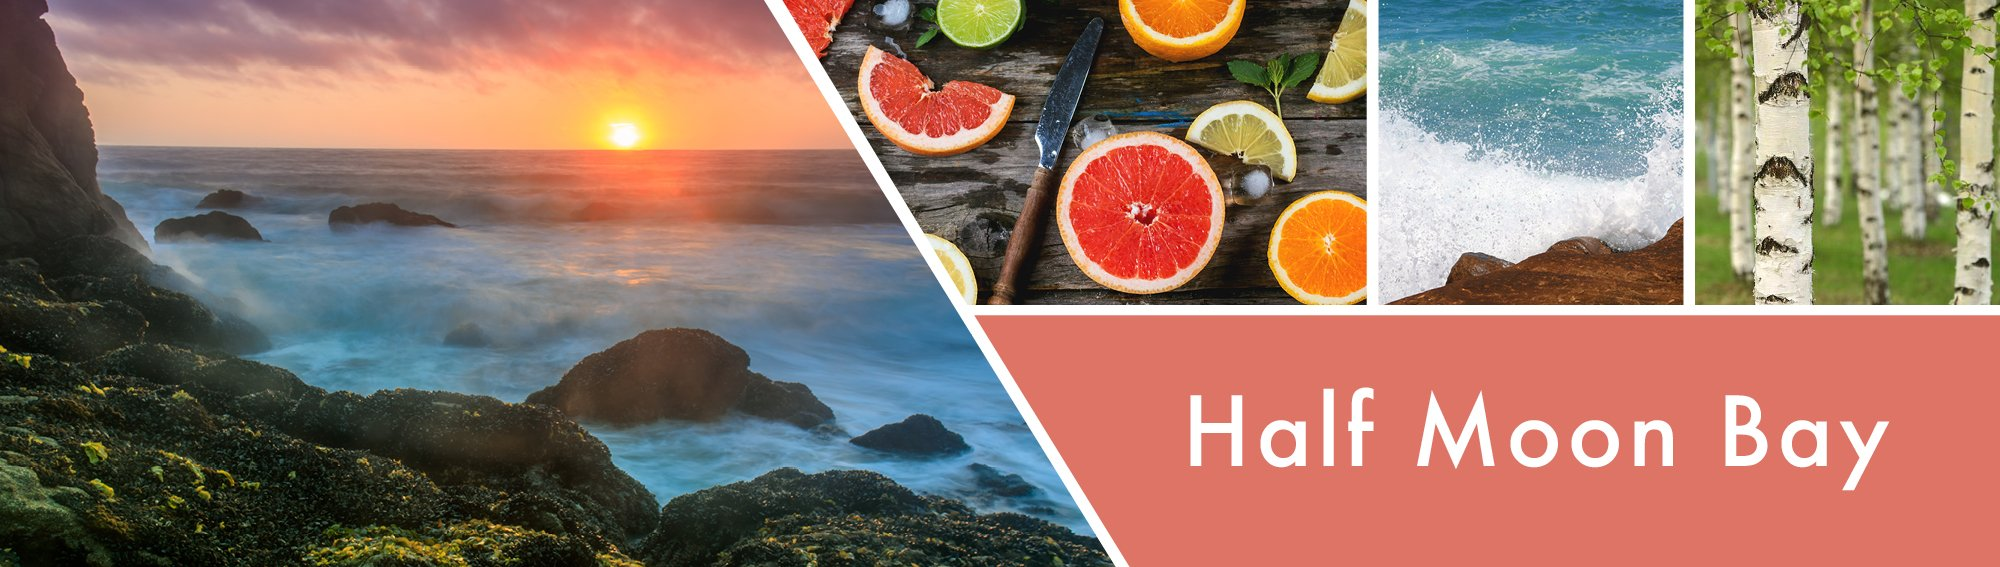 Half Moon Bay Fragrance